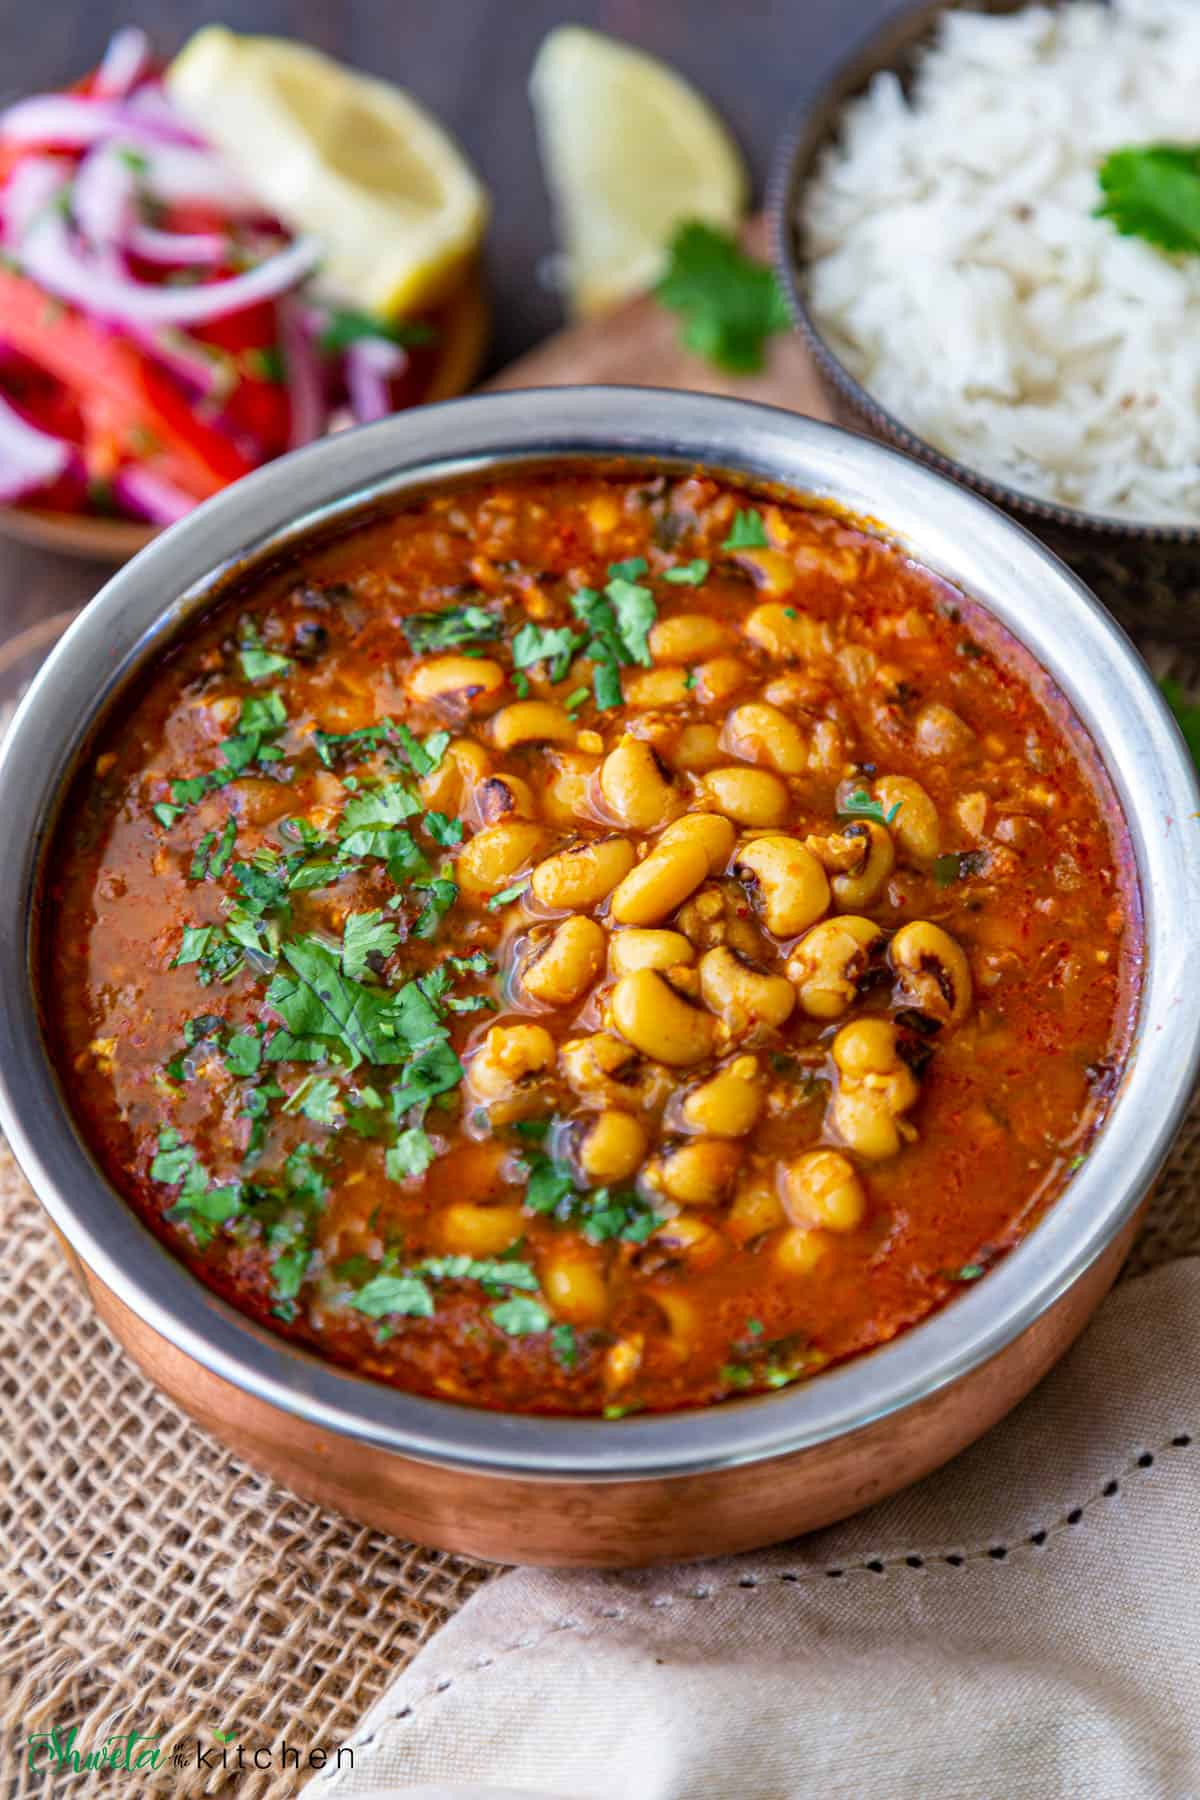 Side view of Lobia (black eyed peas) curry in a bowl on a wooden surface with rice and salad on the side